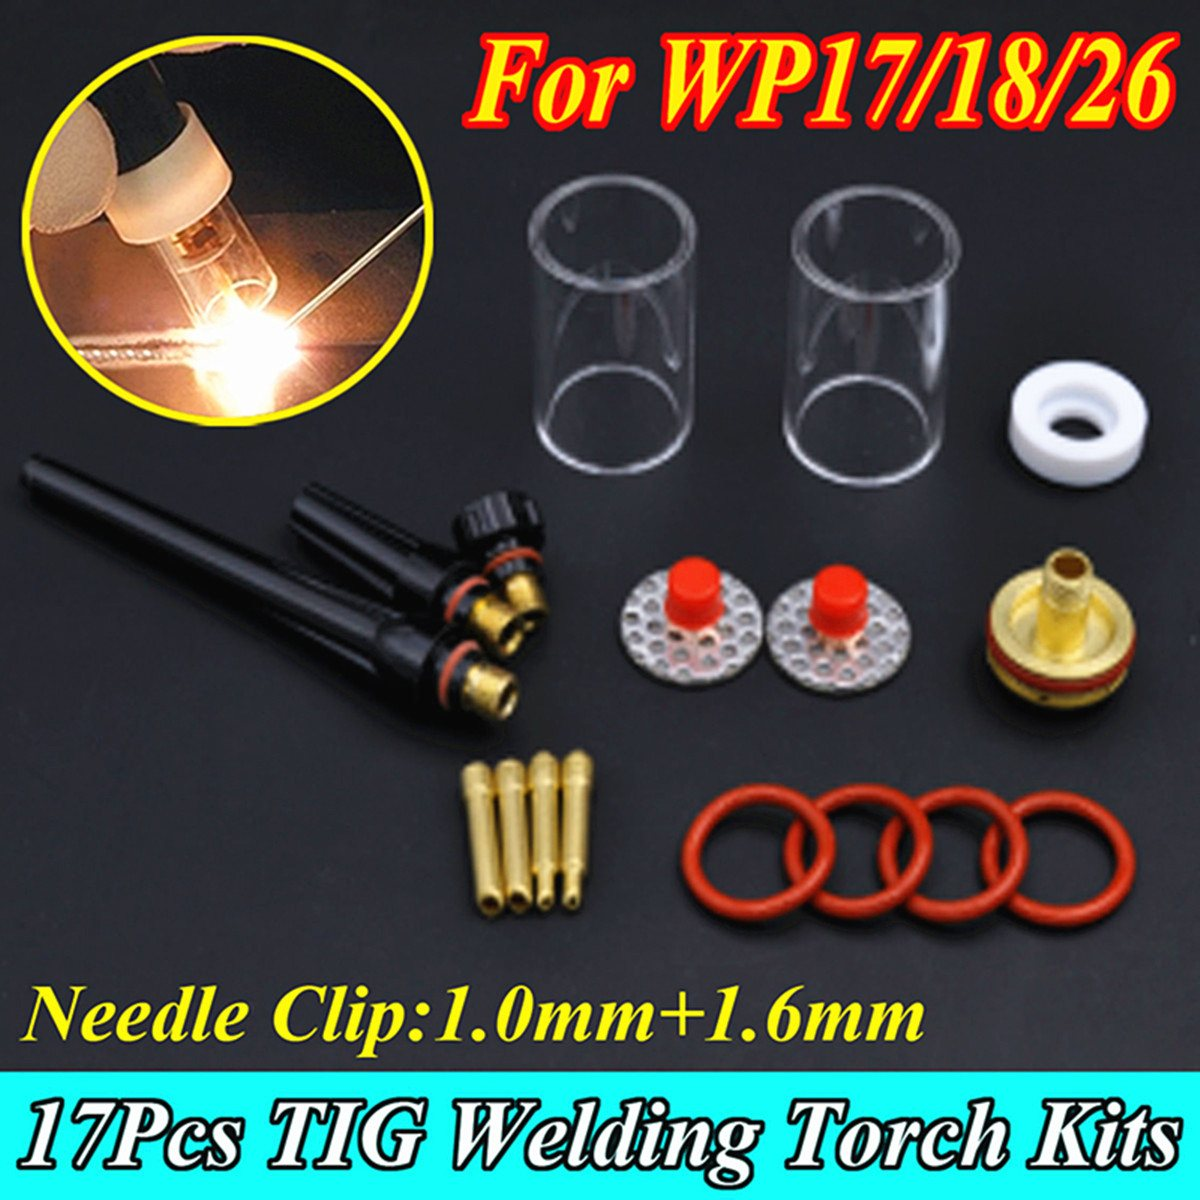 New 17Pcs TIG Welding Torch Stubby Collet Gas Lens Glass Nozzle Pryex Cup Kit with Heat-Resistant O-rings For WP-17/18/26 Series wp 17f sr 17f tig welding torch complete 20feet 6meter soldering iron flexible